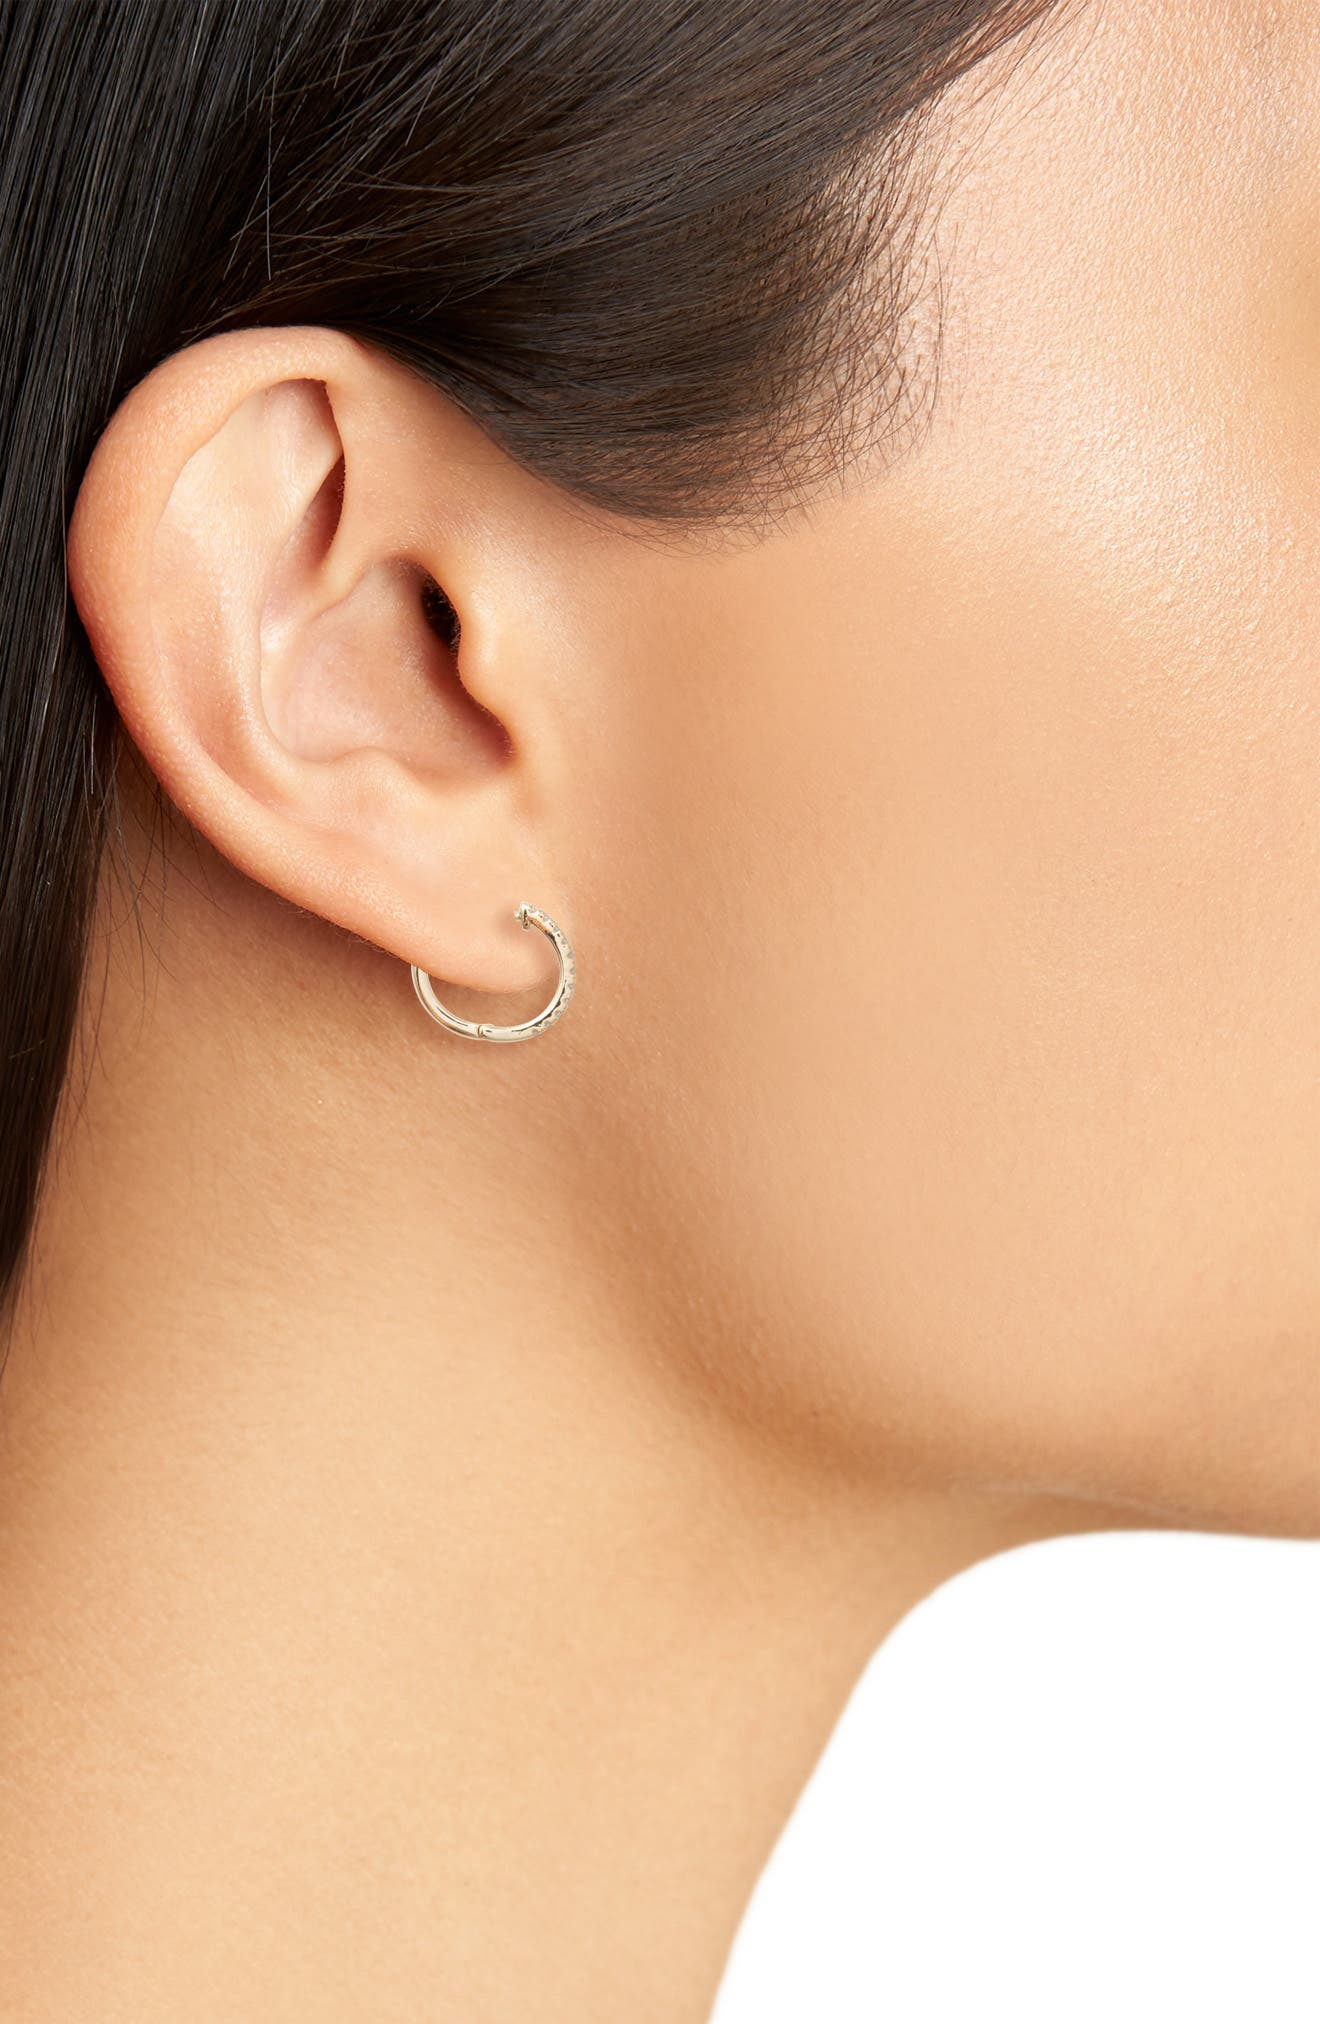 Kennedy Petite Stone Hoops,                             Alternate thumbnail 2, color,                             Gold/ Cubic Zirconia